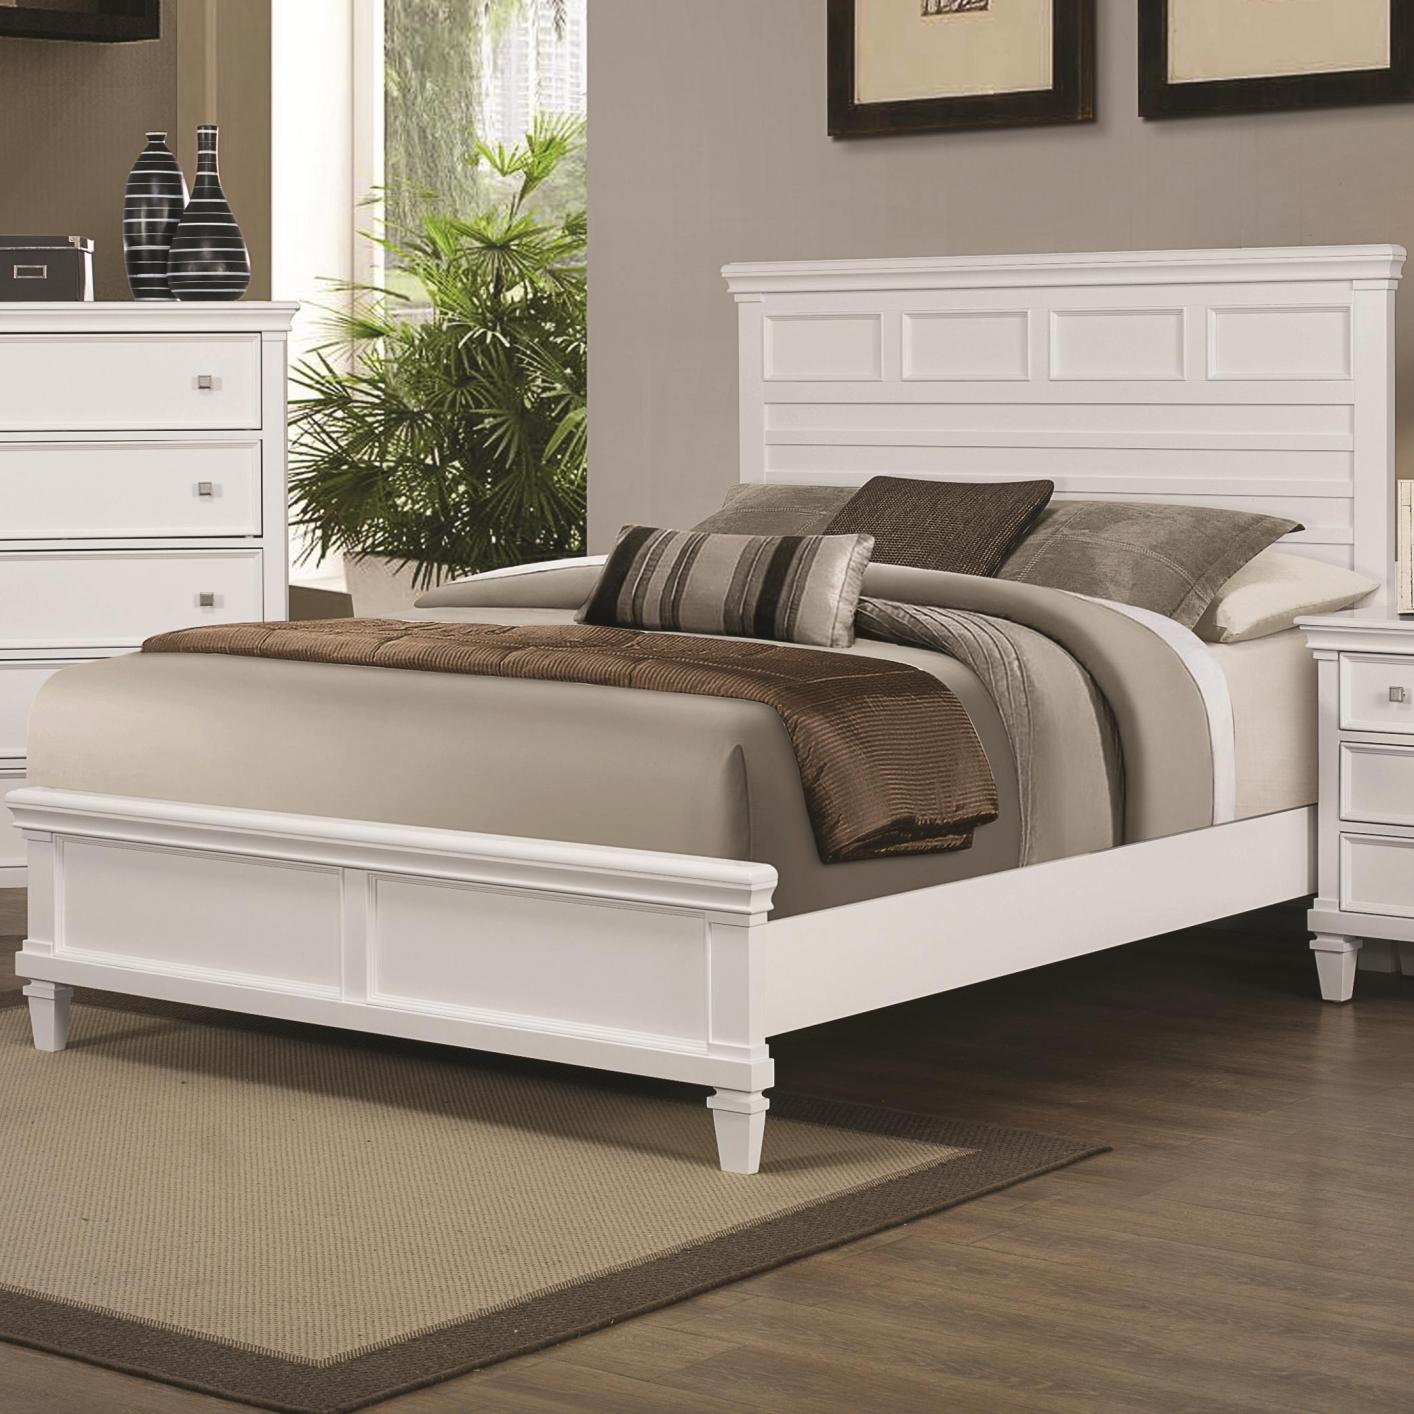 White Wood Bed - Steal-A-Sofa Furniture Outlet Los Angeles CA